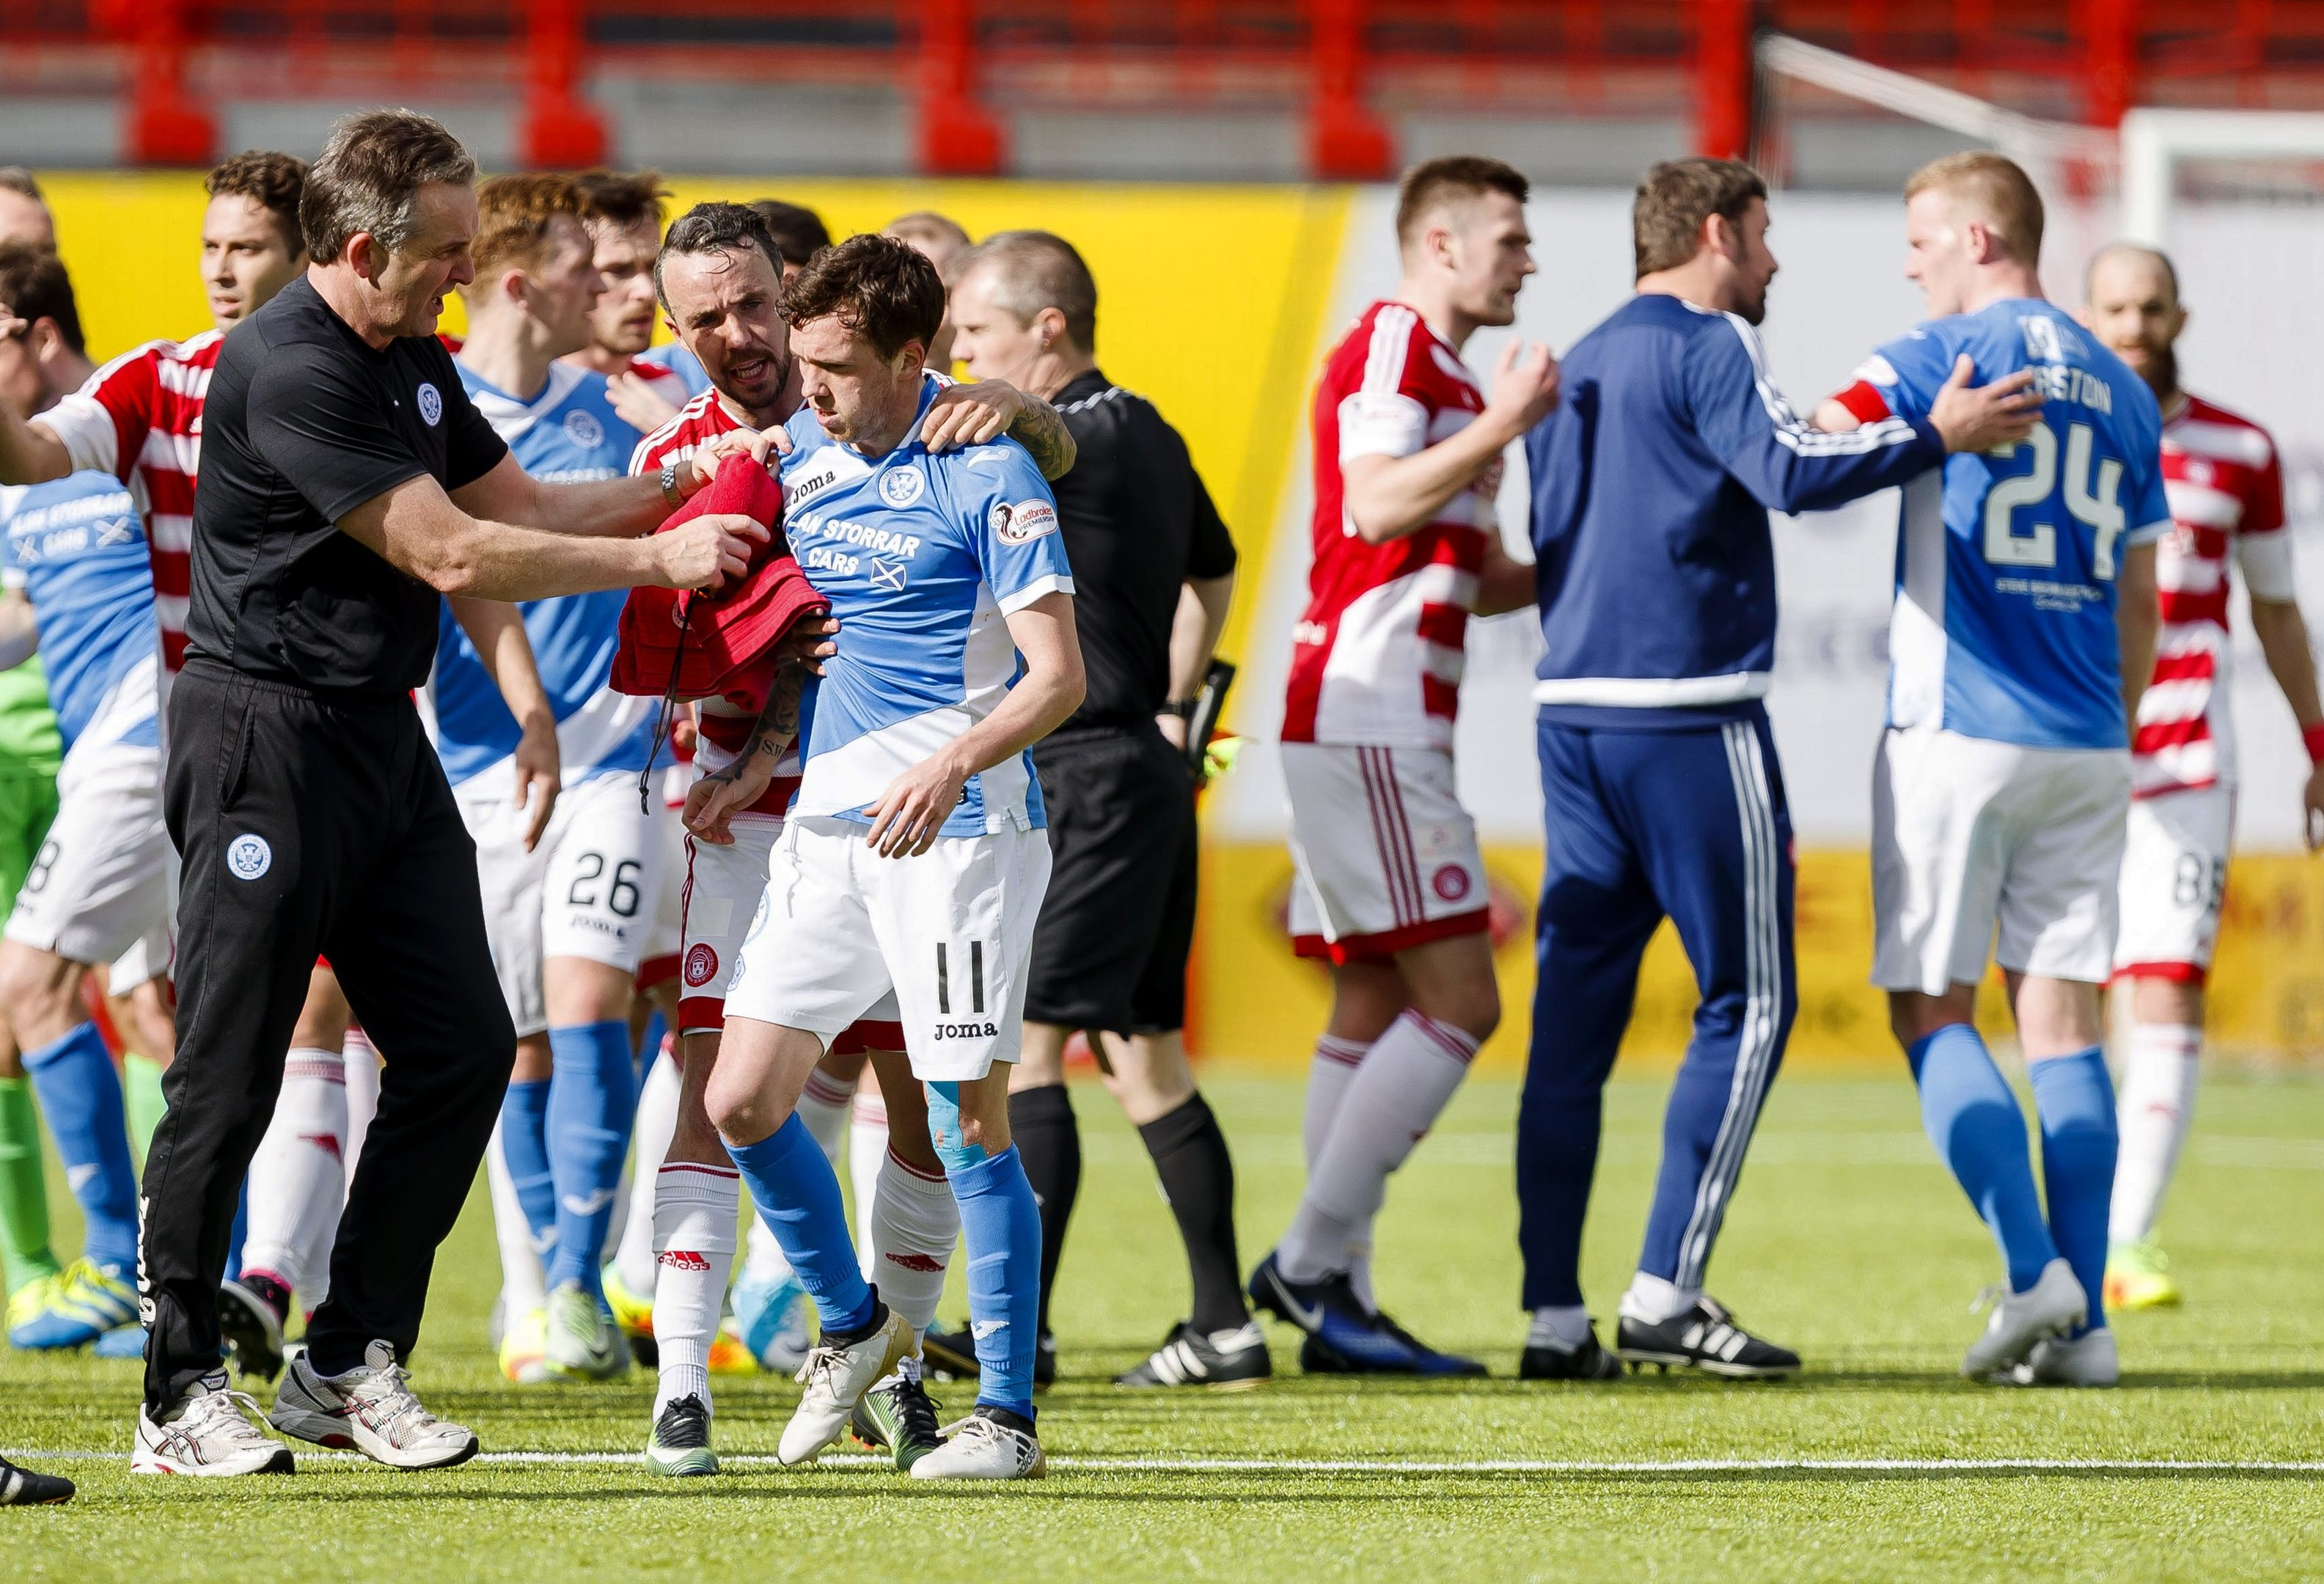 It all kicked off at the Hamilton Accies v St Johnstone match.